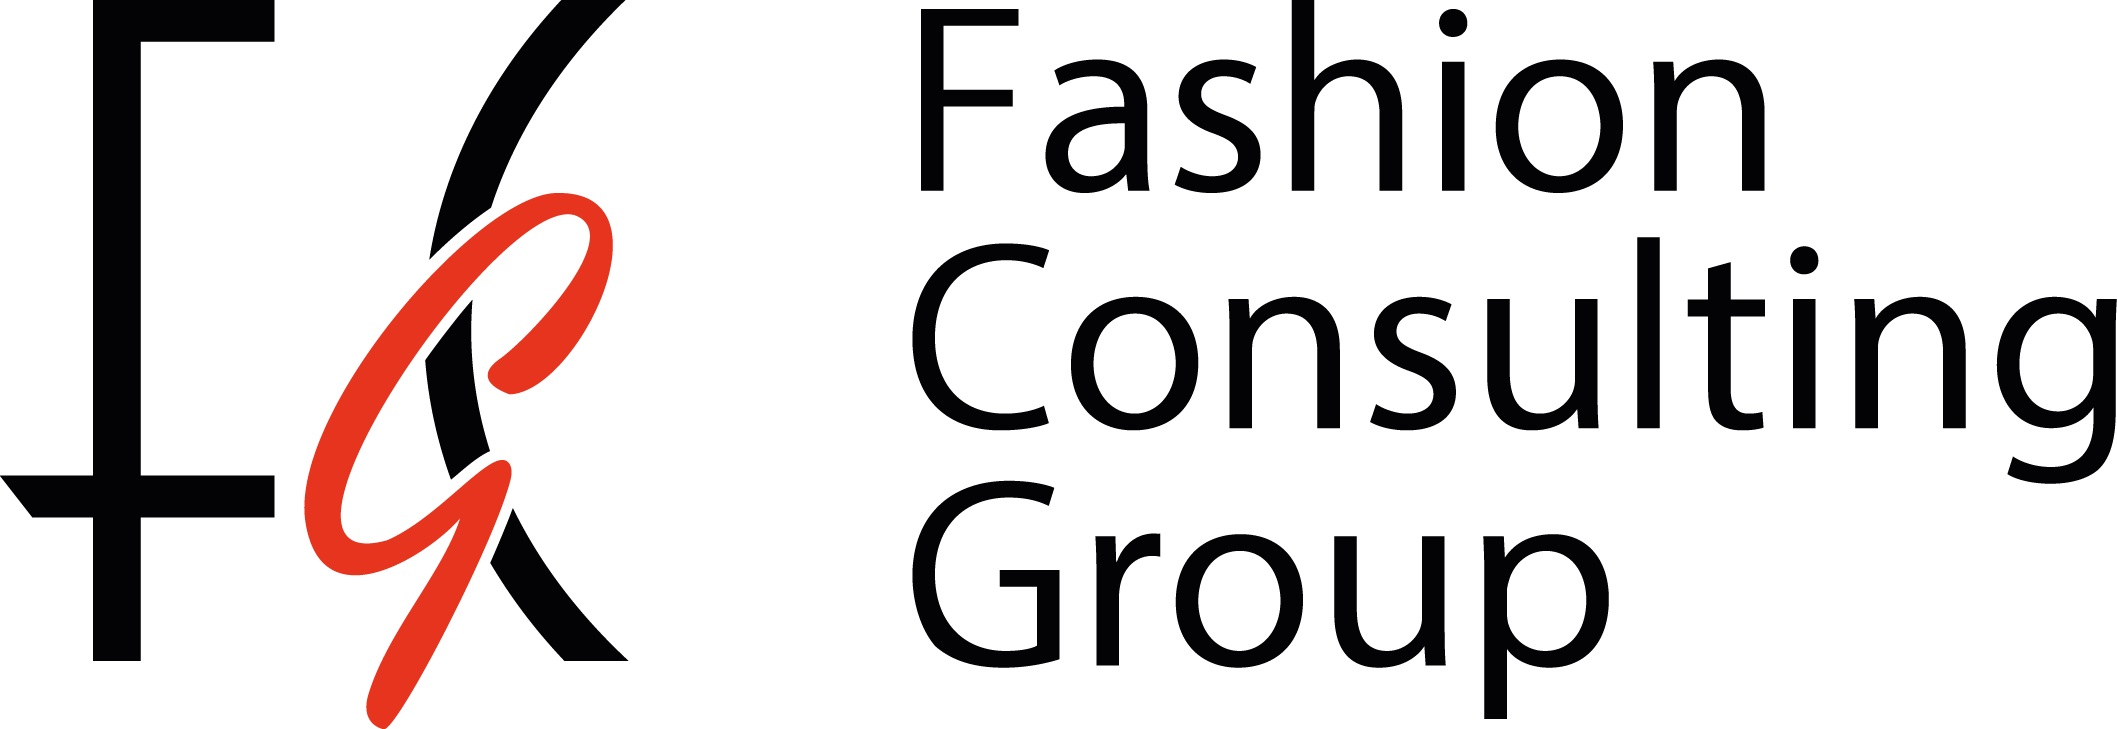 Upcoming trainings by Fashion Consulting Group